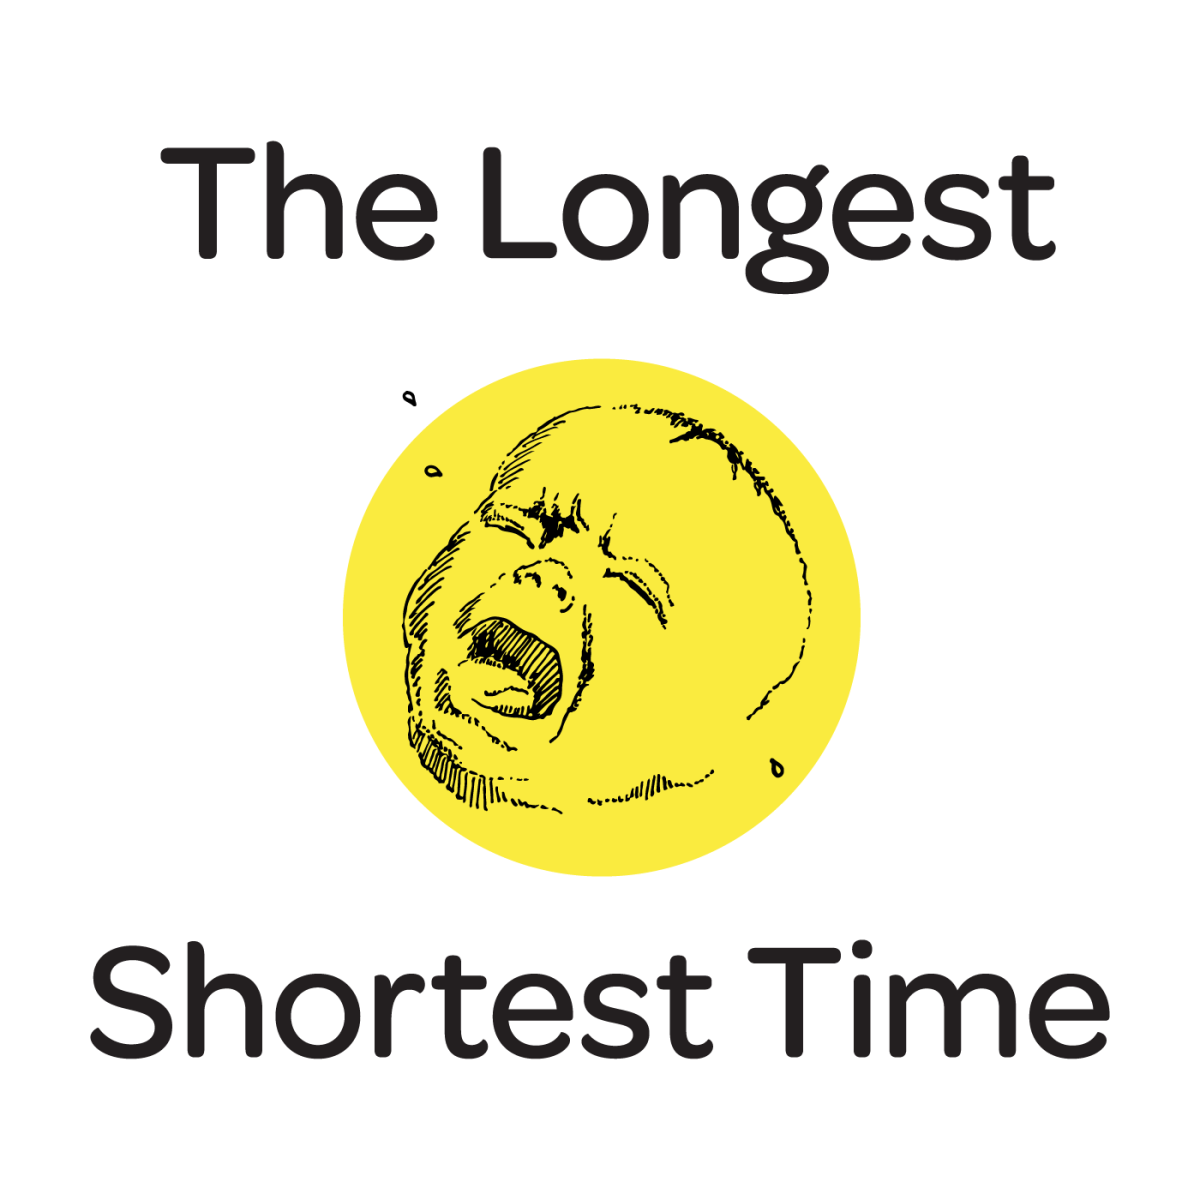 Image Credit: The Longest Shortest Time